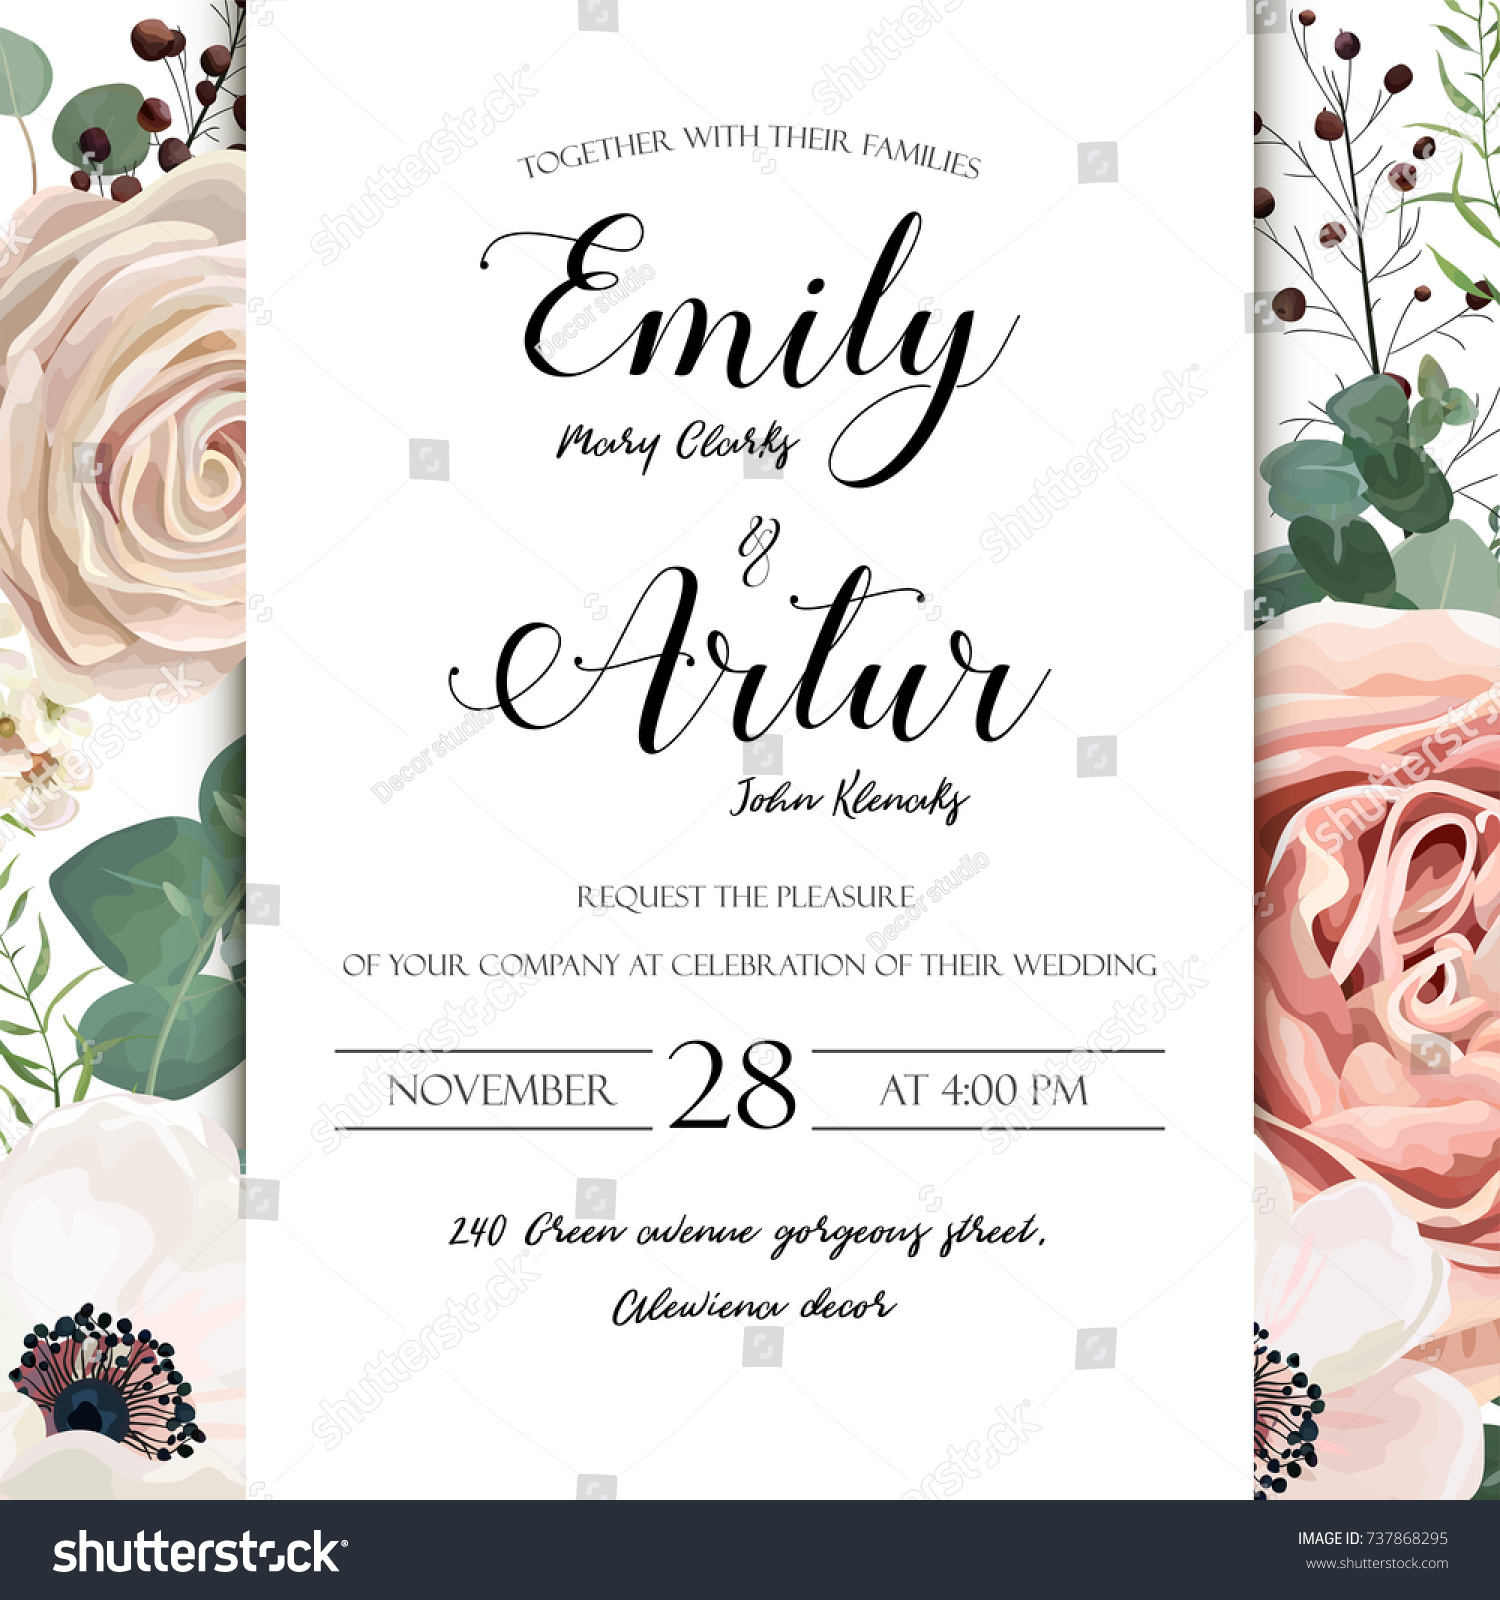 Floral Wedding Invitation Elegant Invite Card Stock Photo (Photo ...